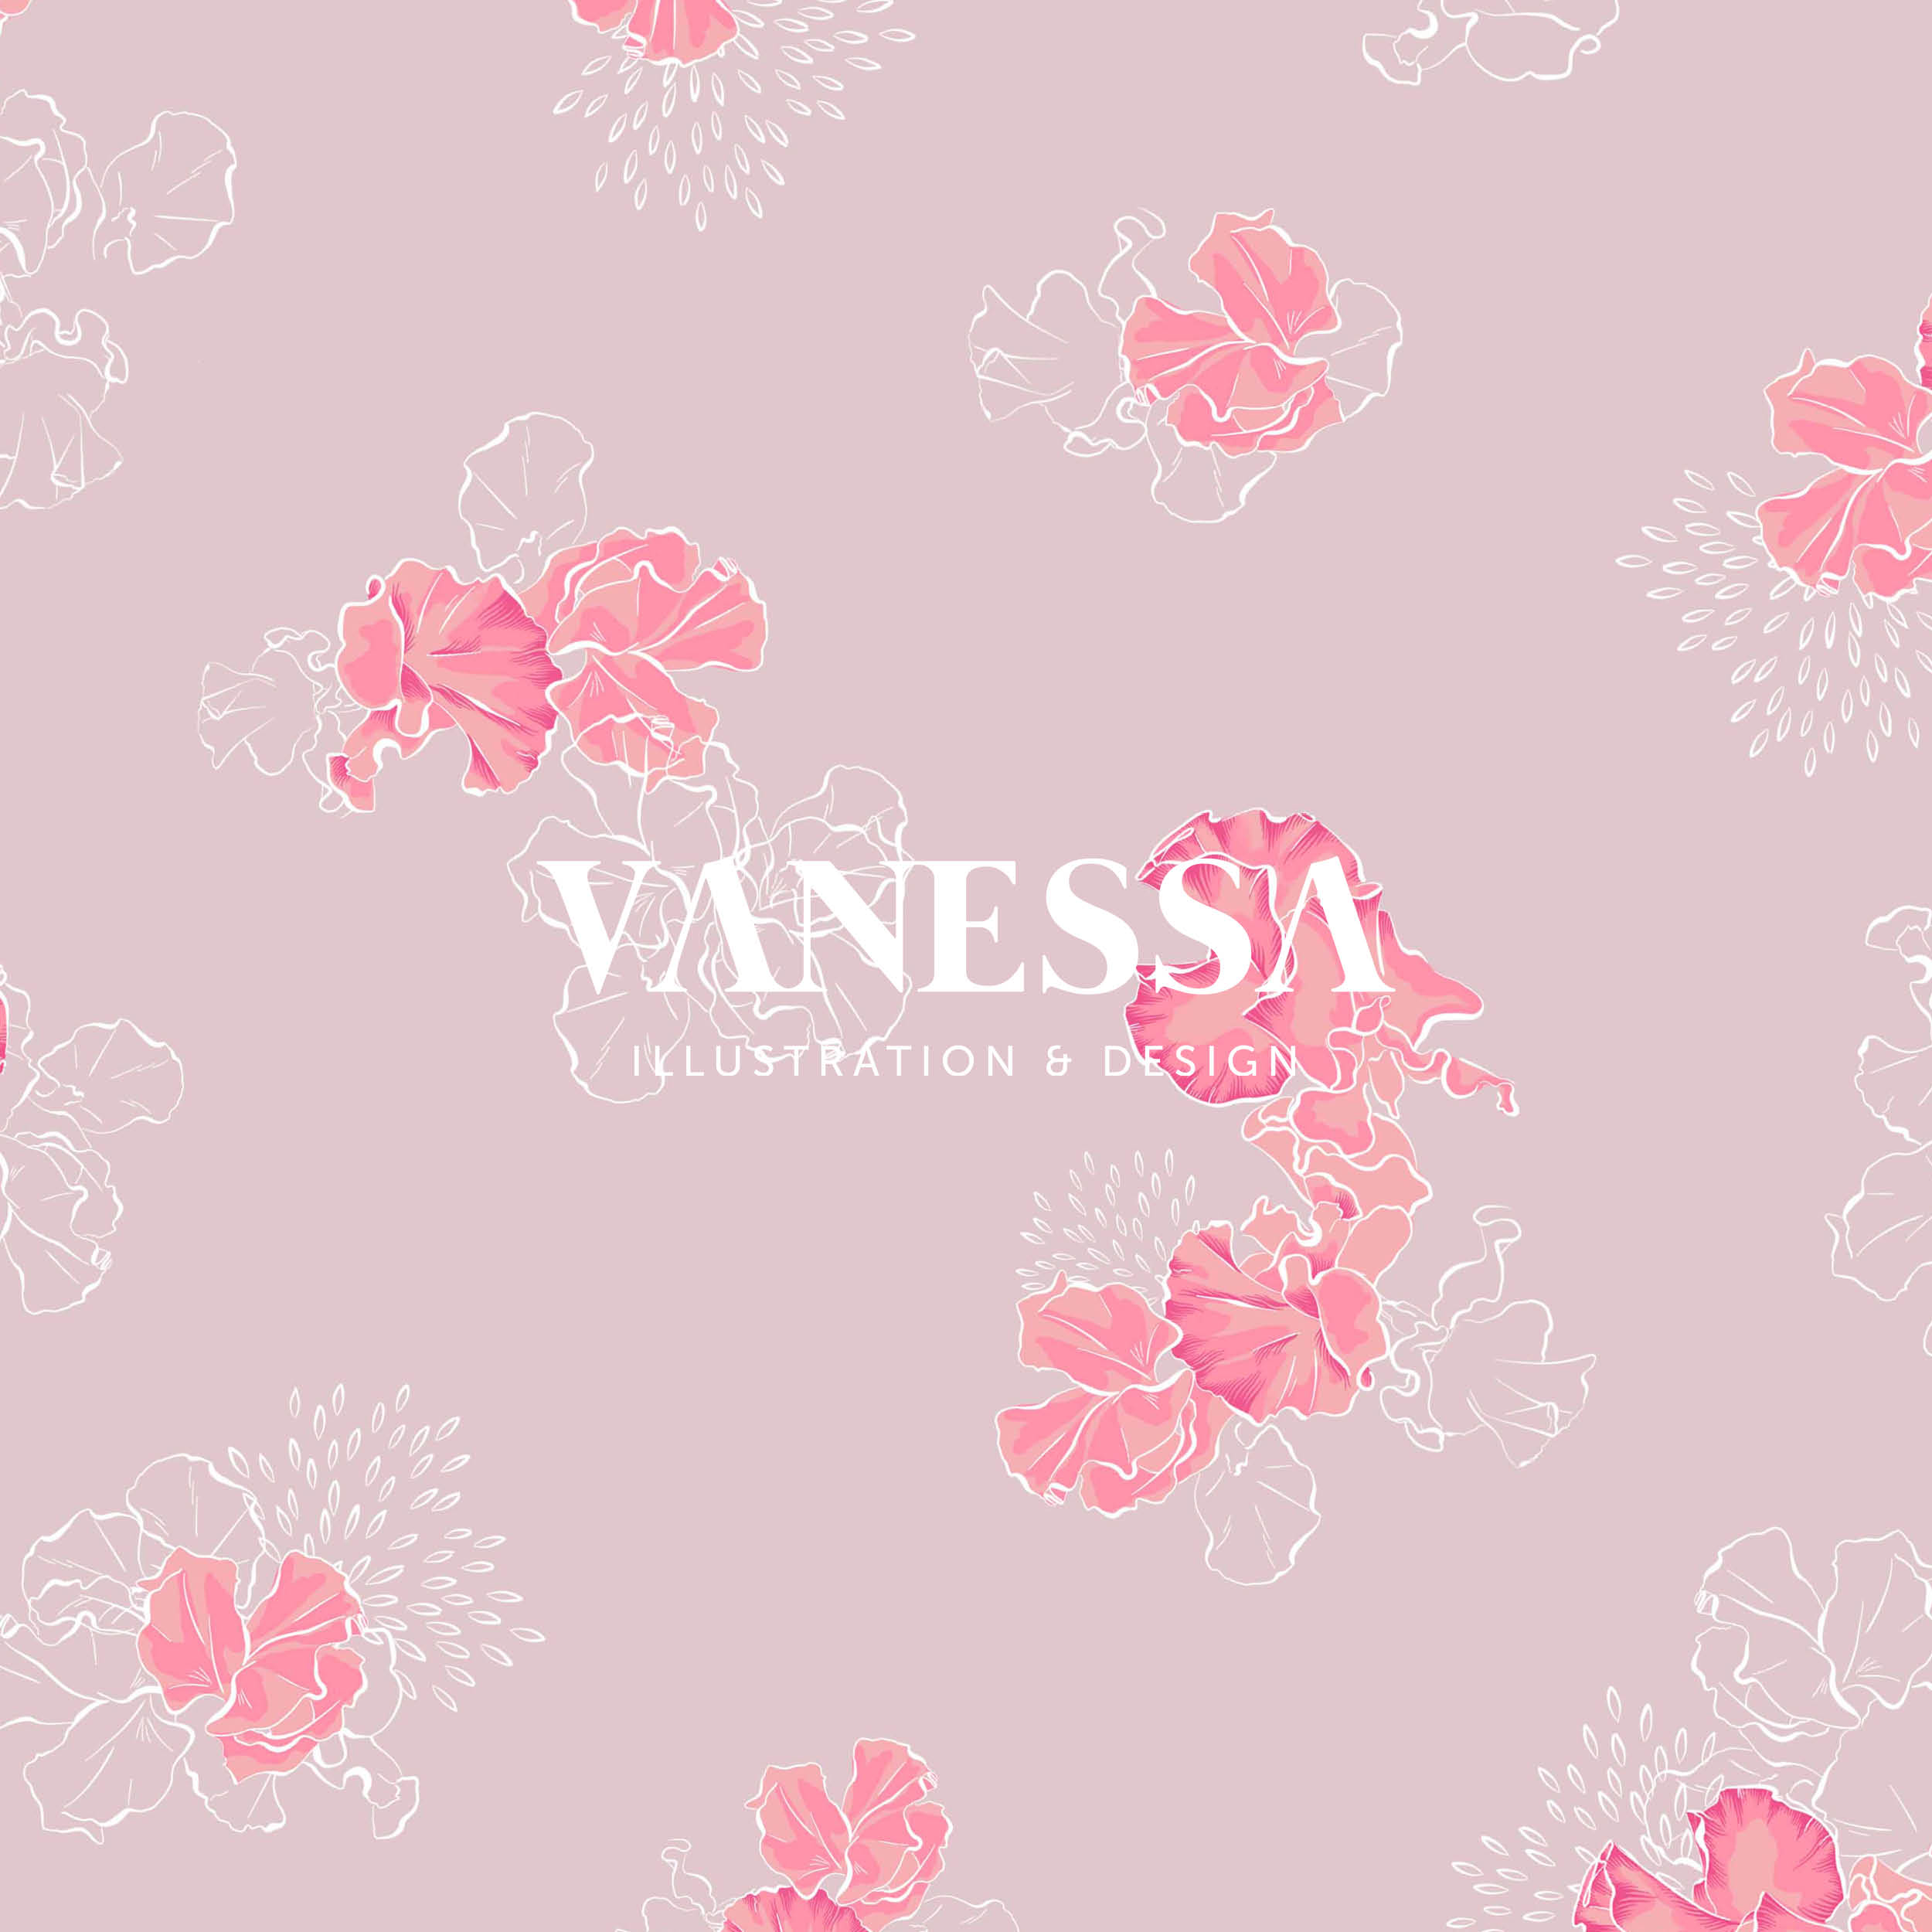 Vanessa Vanderhaven Illustration and Design13.jpg